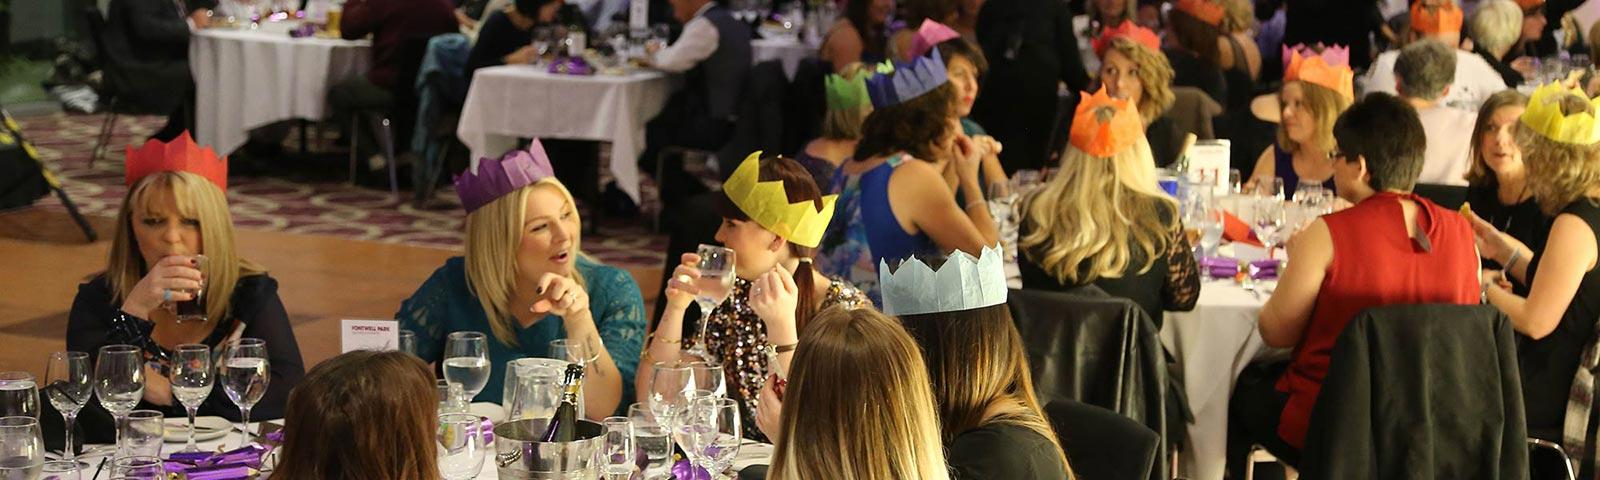 A crowd of Christmas revellers exchange humorous stories around dining tables.